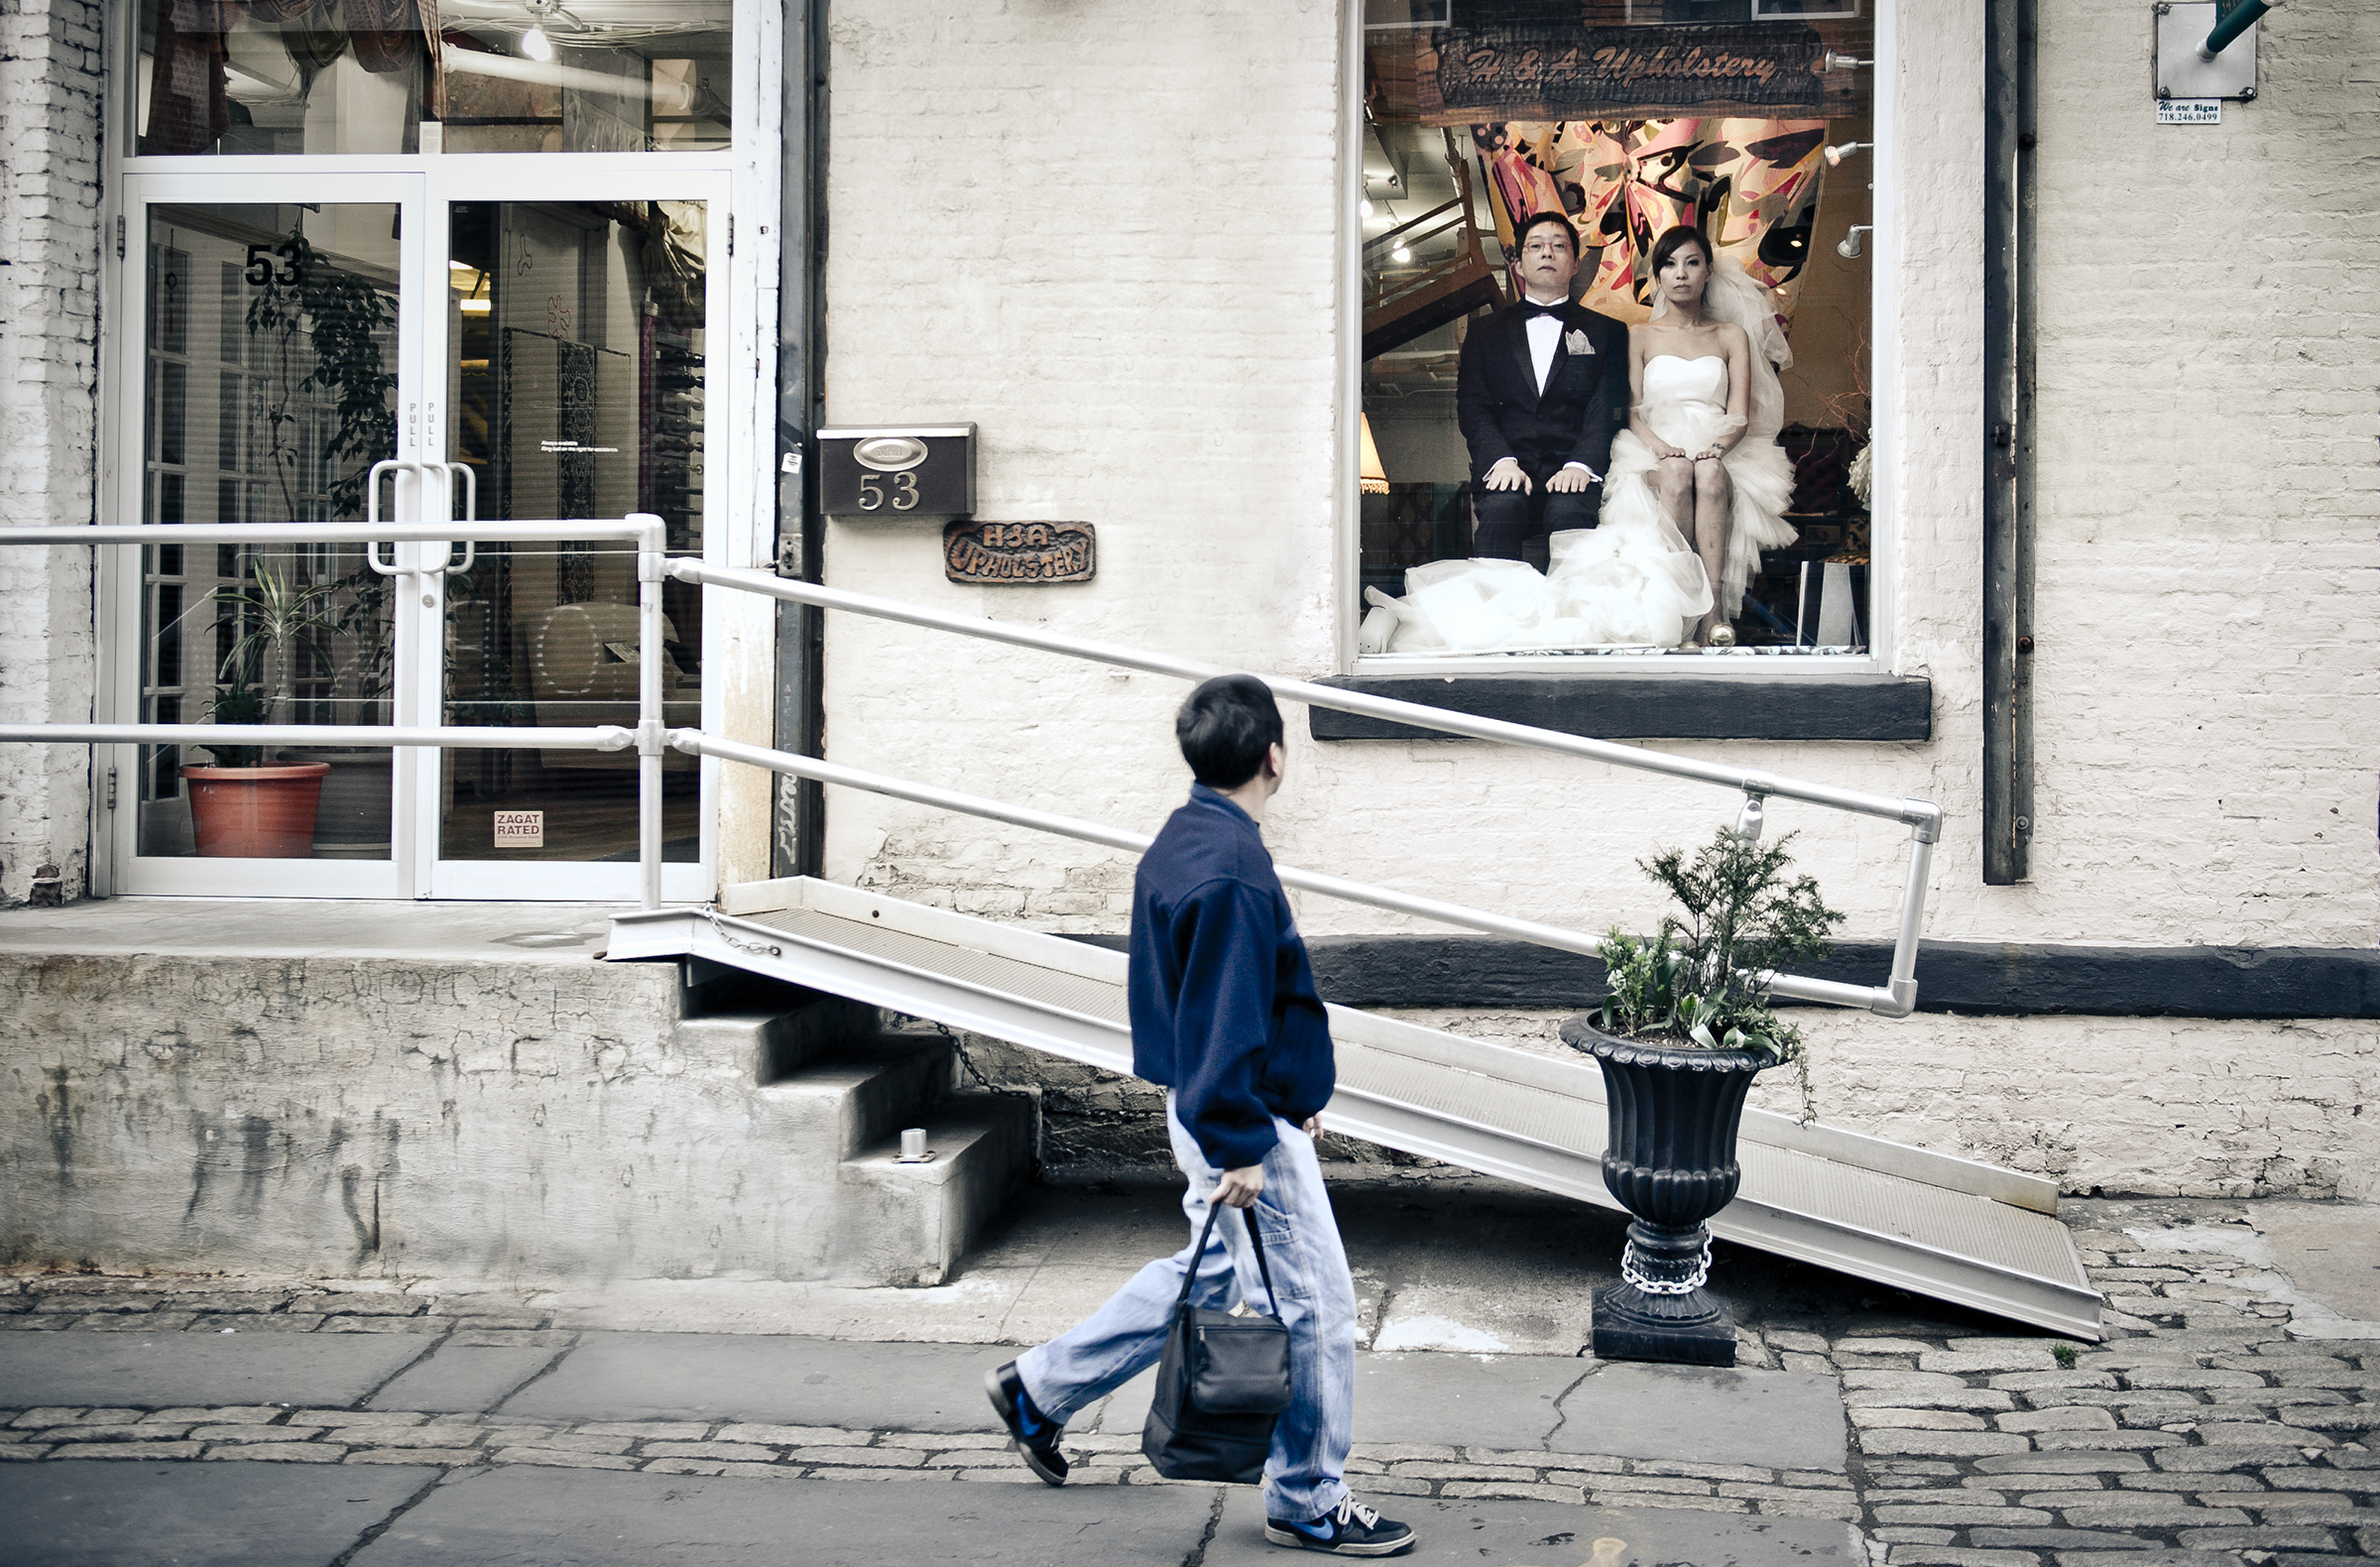 couple-reflected-in-shop-window-with-passerby-matthew-sowa-photography